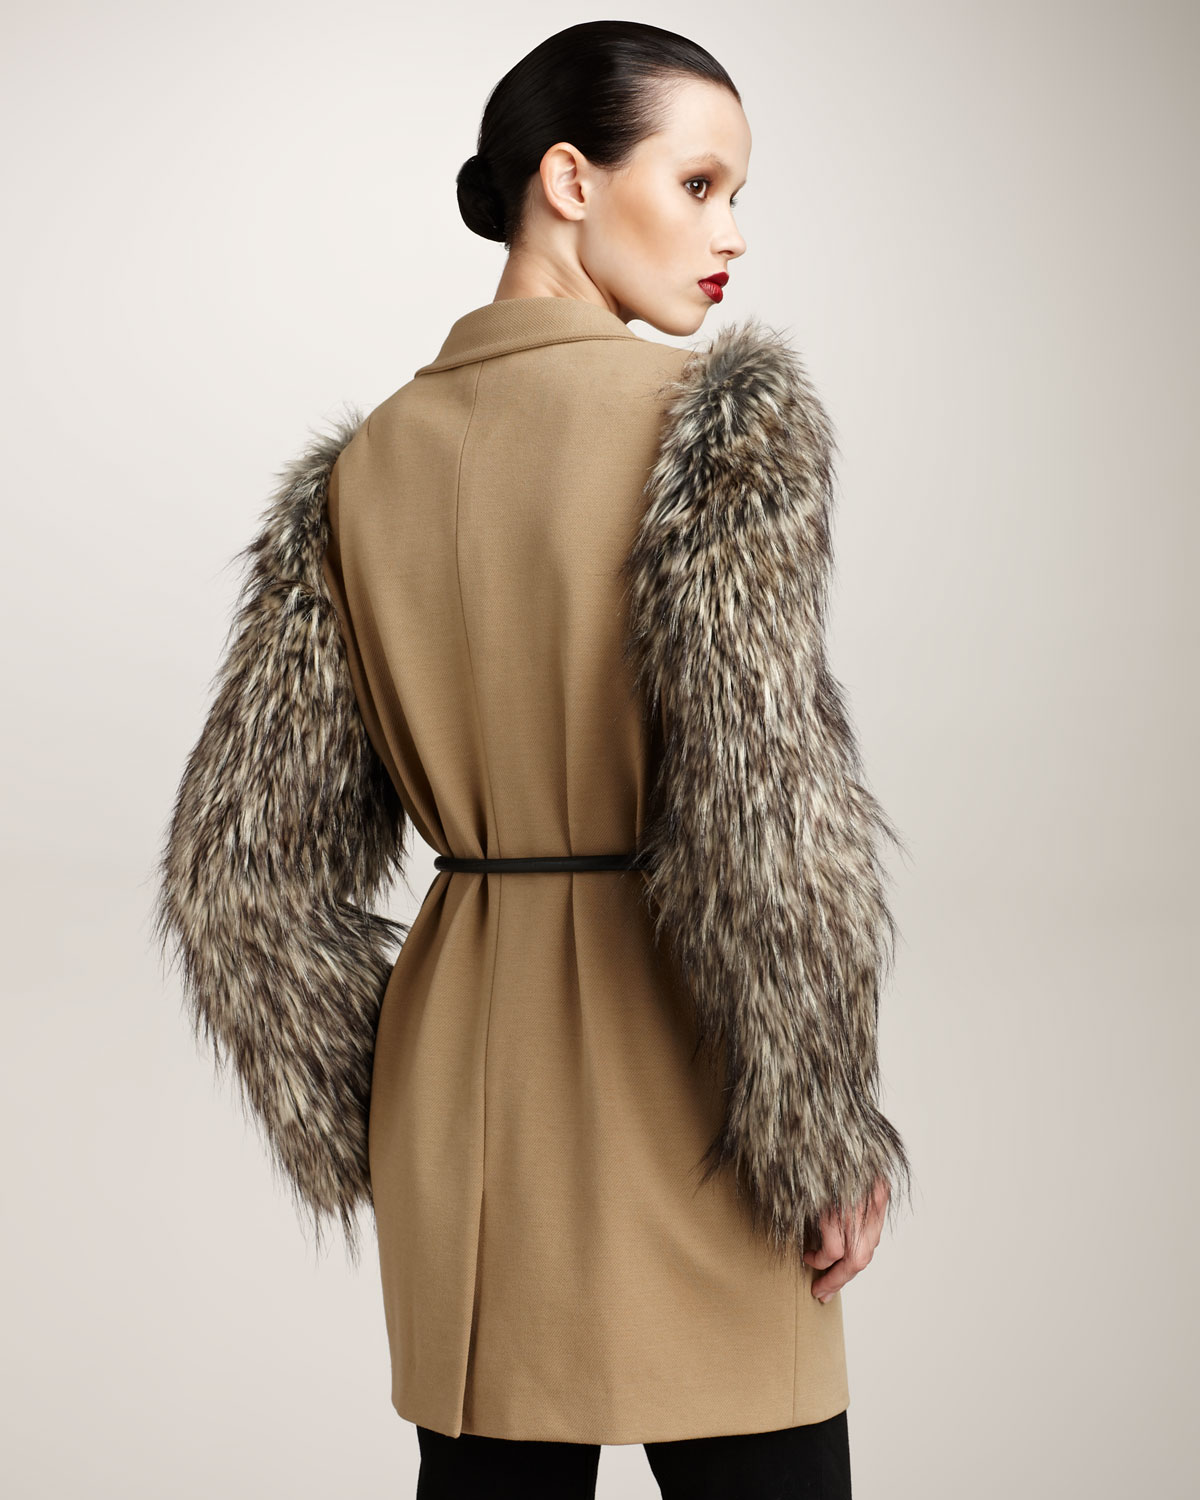 Robert rodriguez Coat with Faux-fur Sleeves in Natural | Lyst